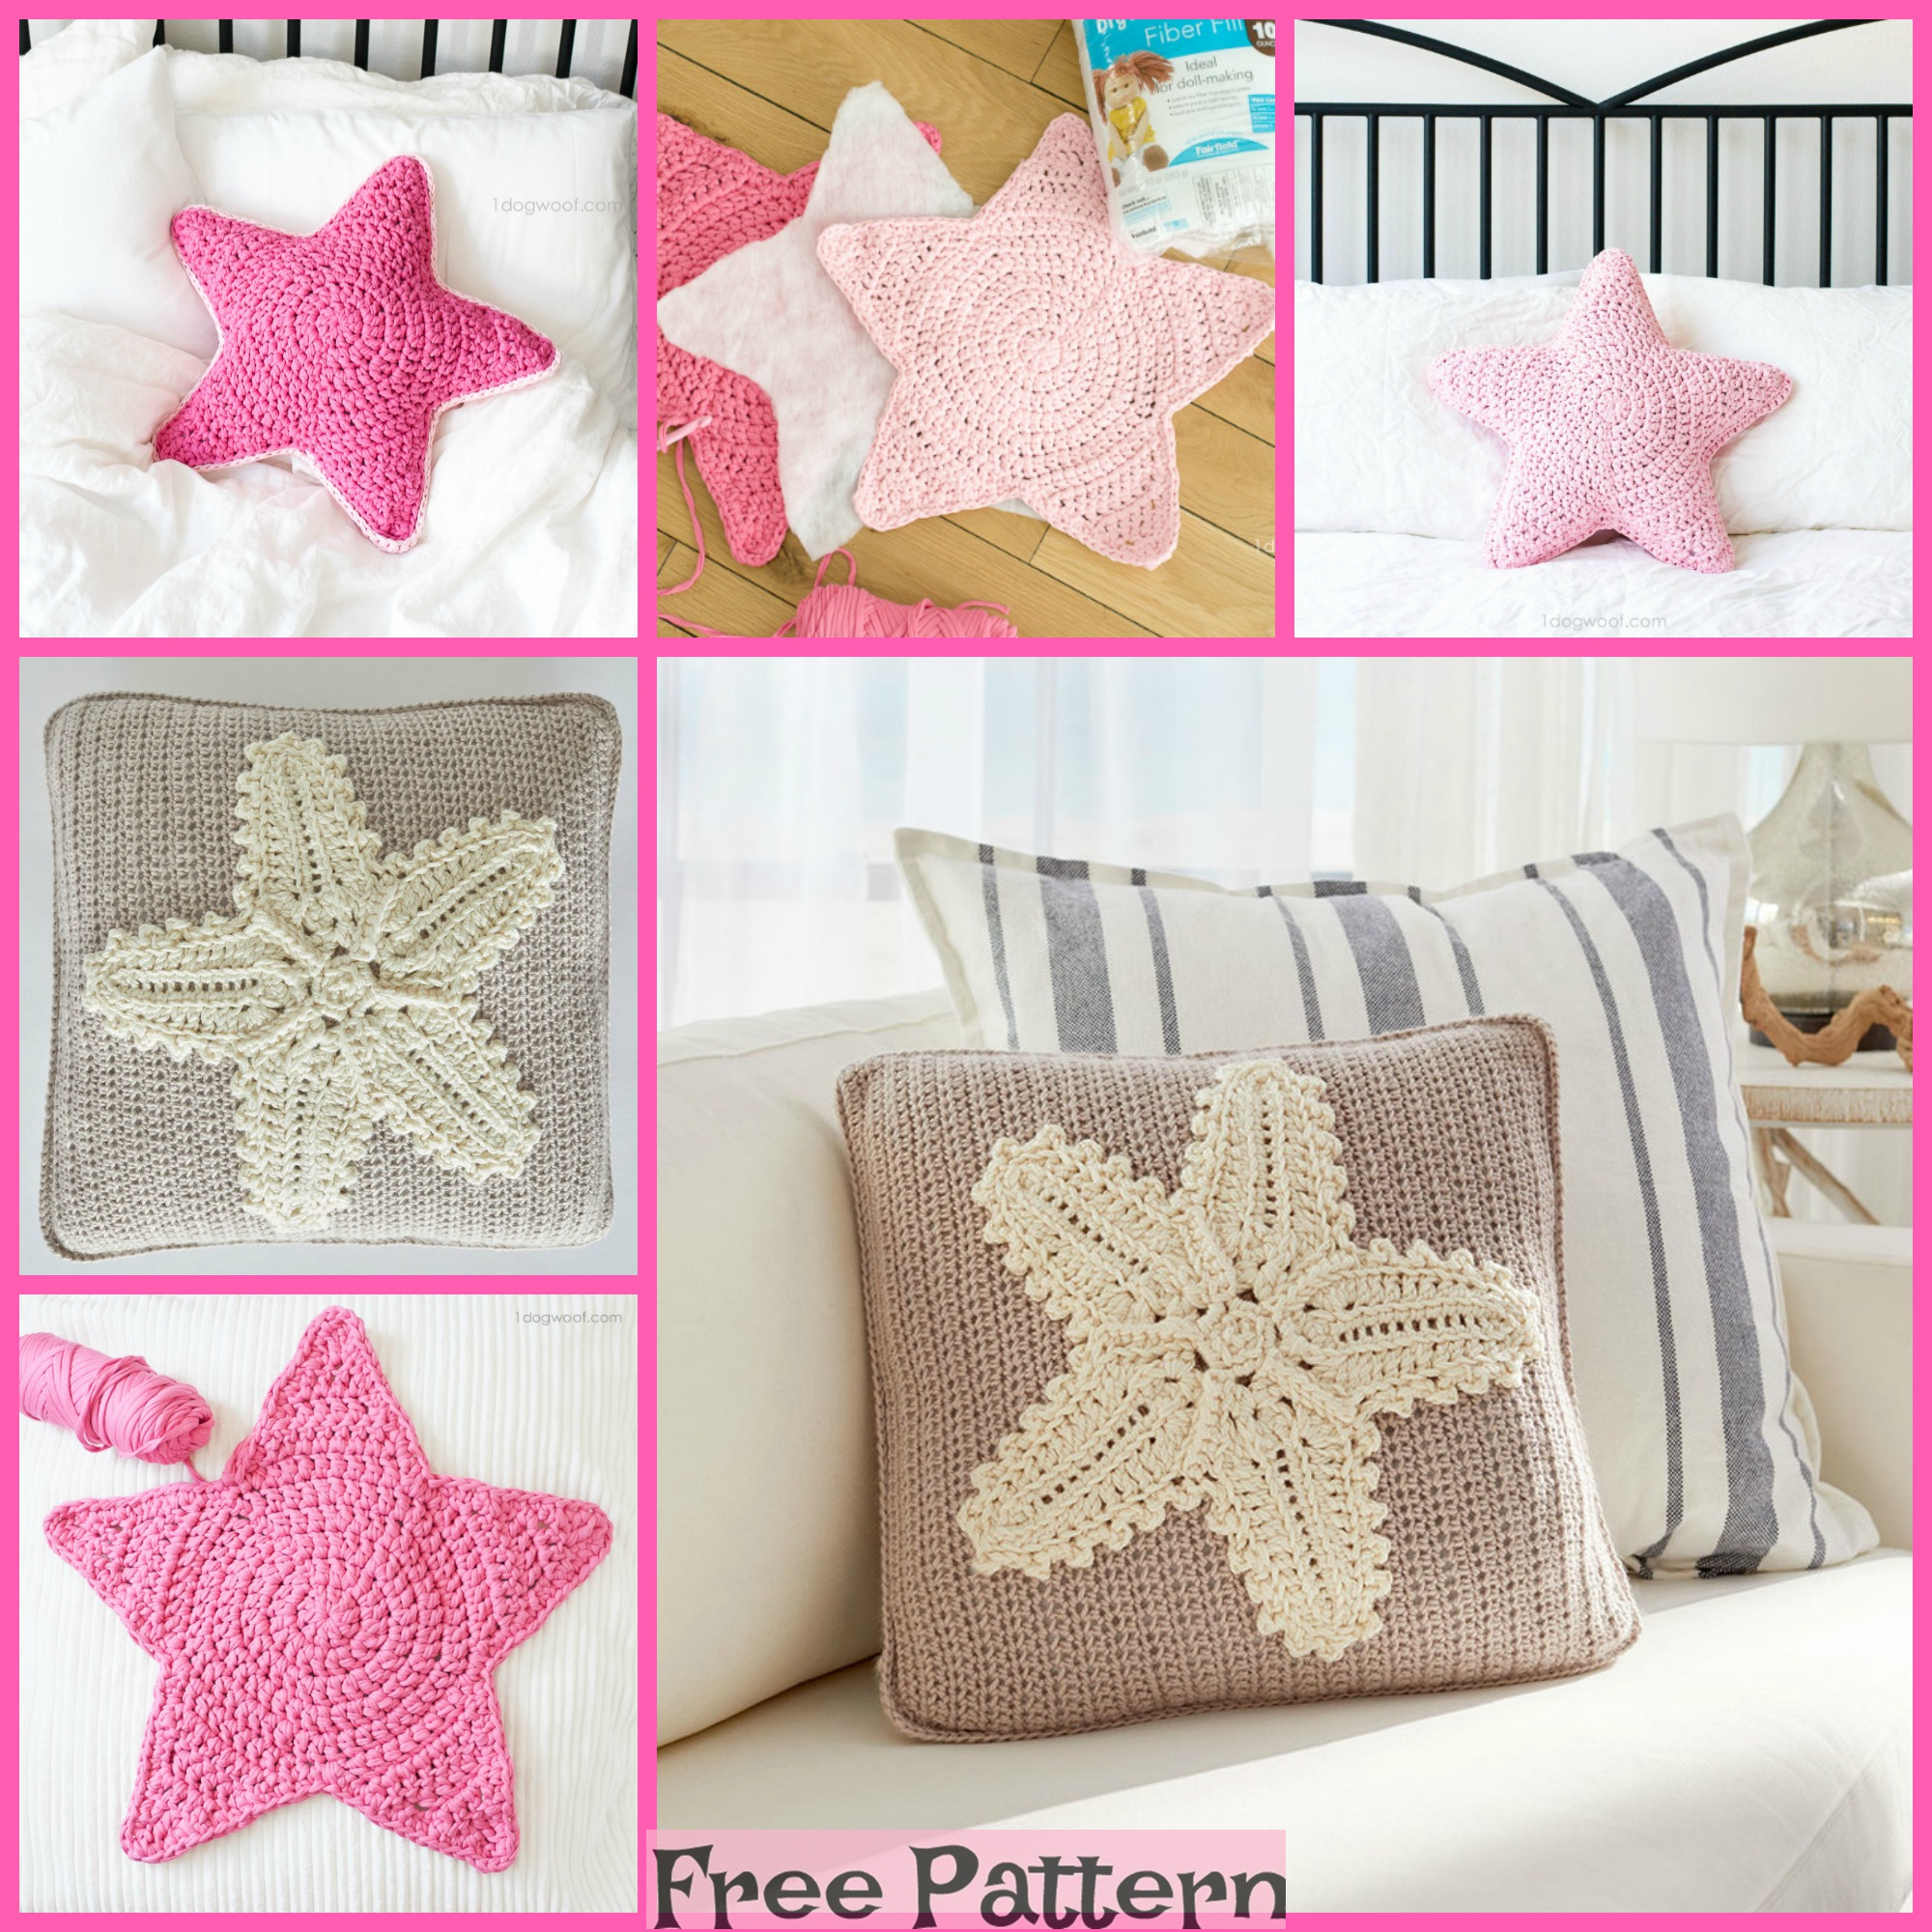 diy4ever- Crochet Starfish Pillow - Free Pattern